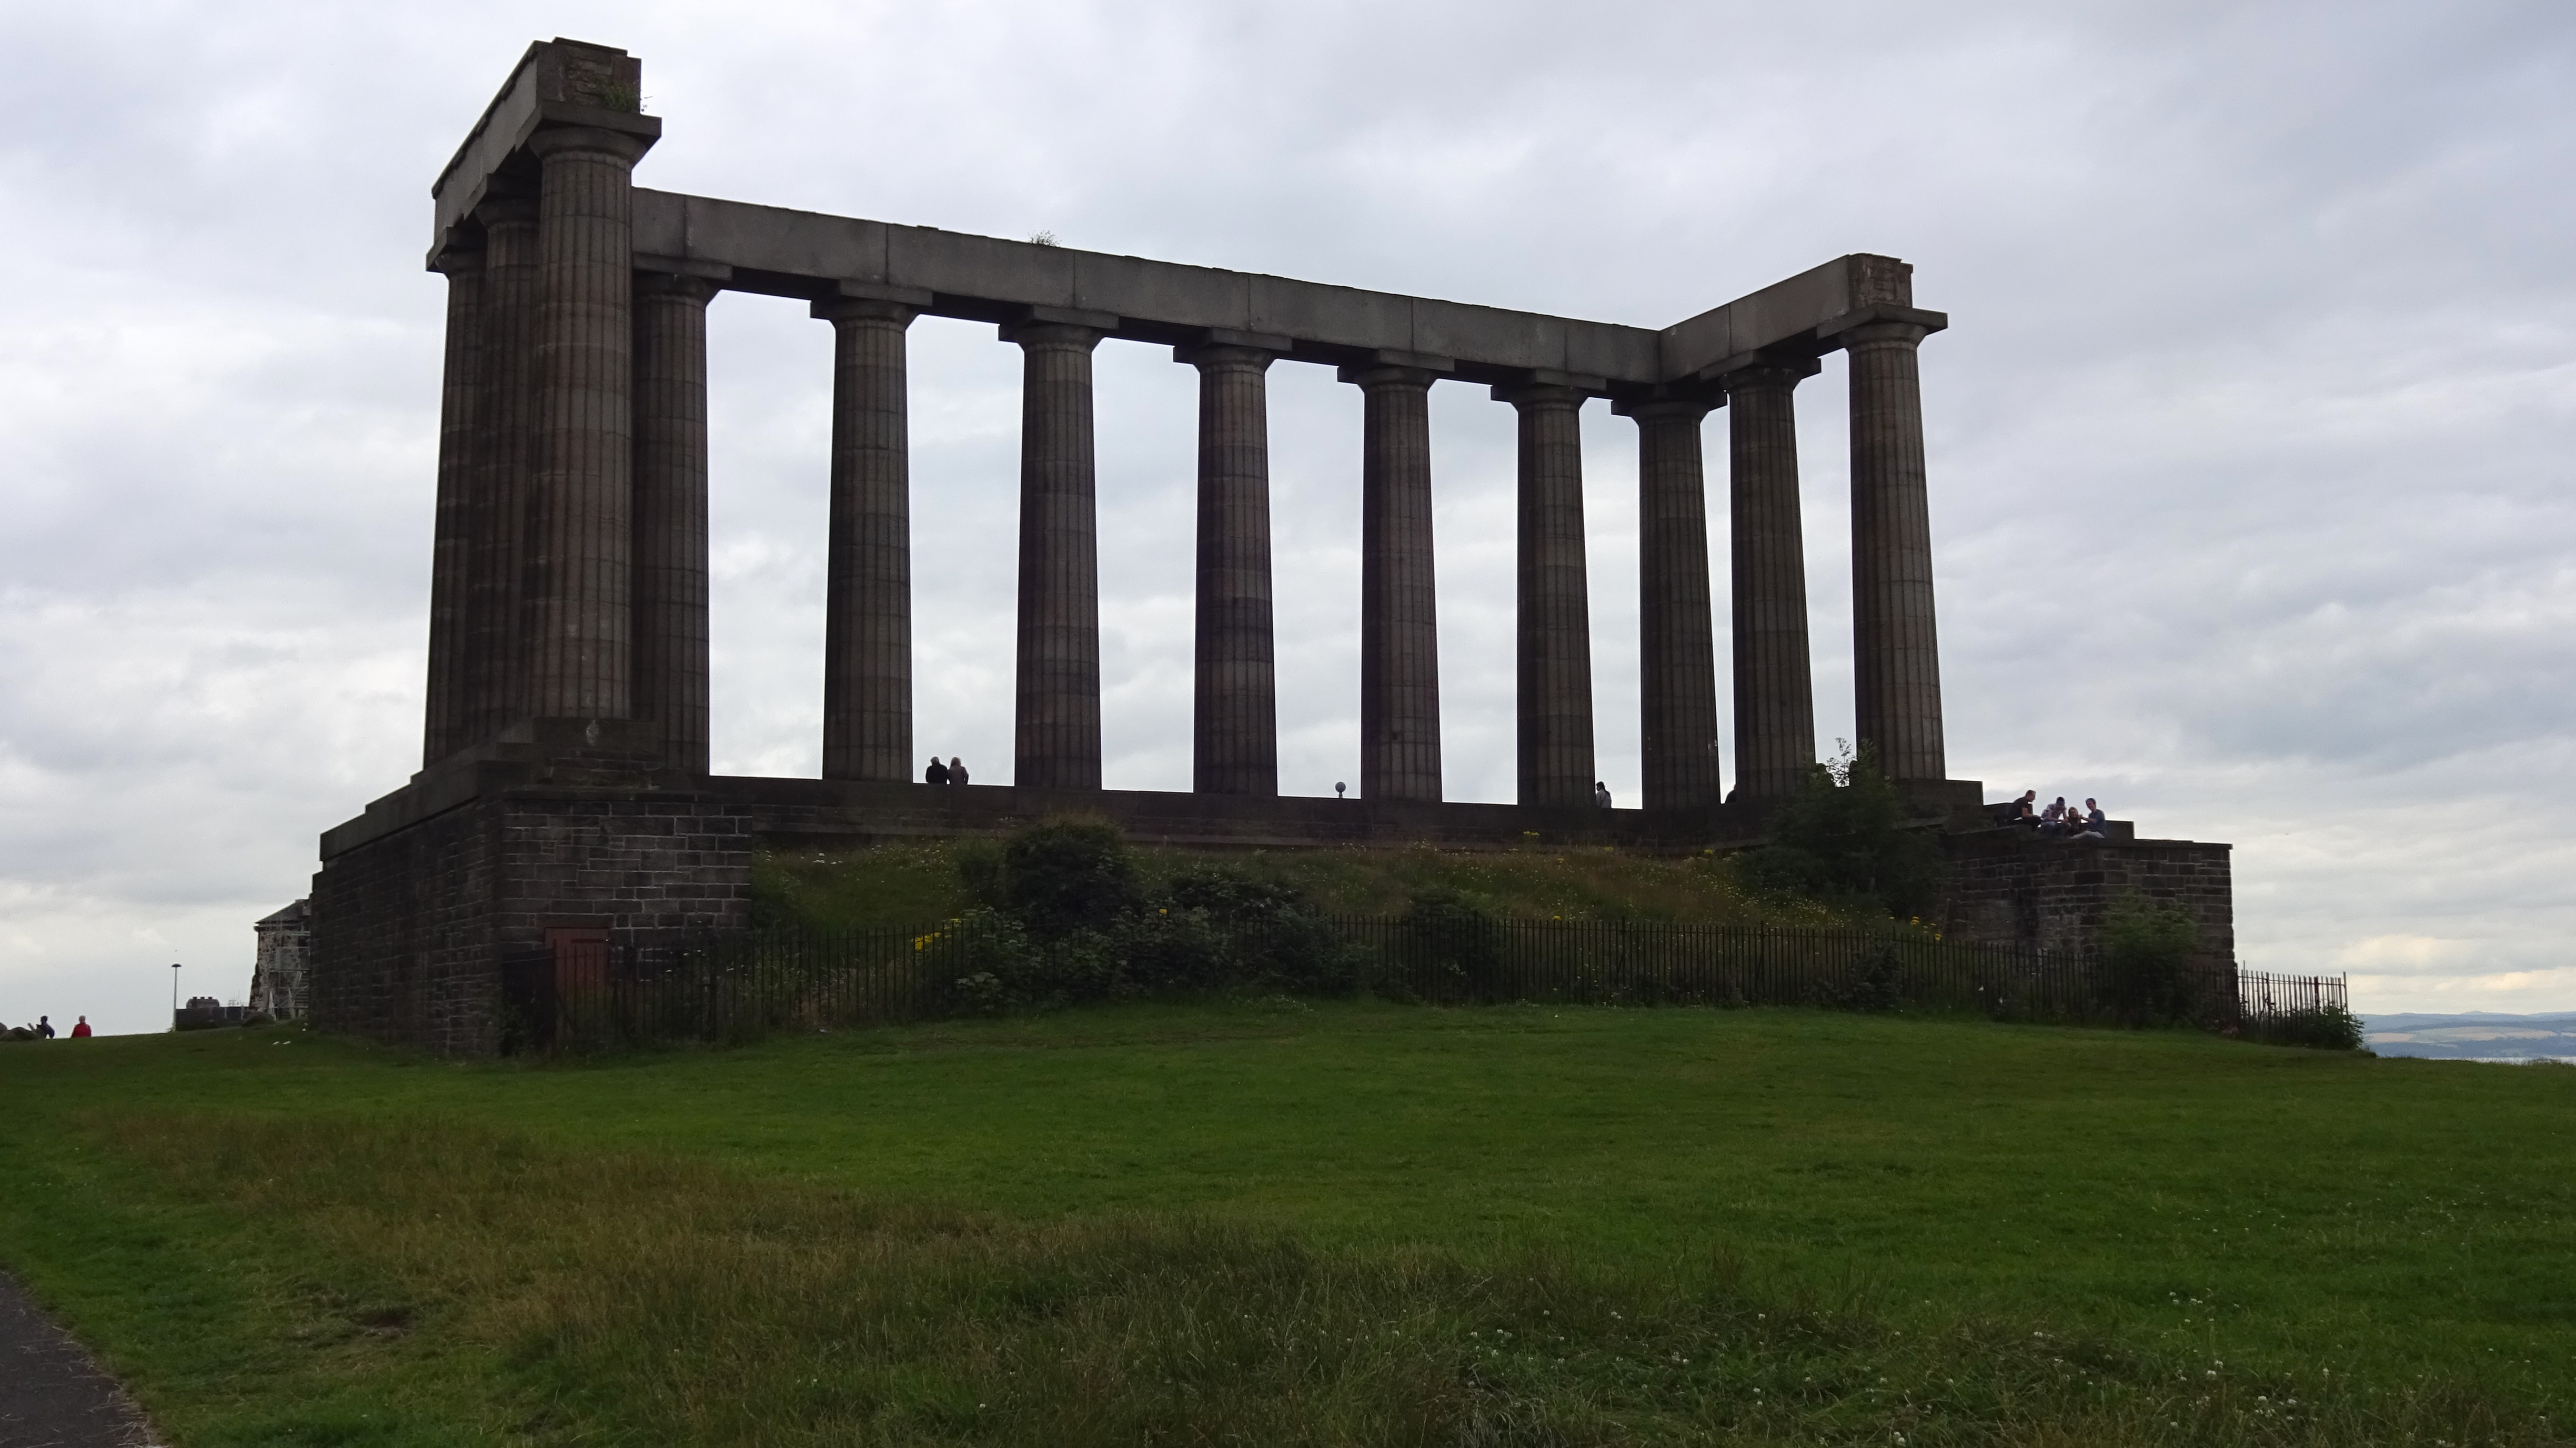 National Monument of Scotland, Calton Hill, Edinburgh.